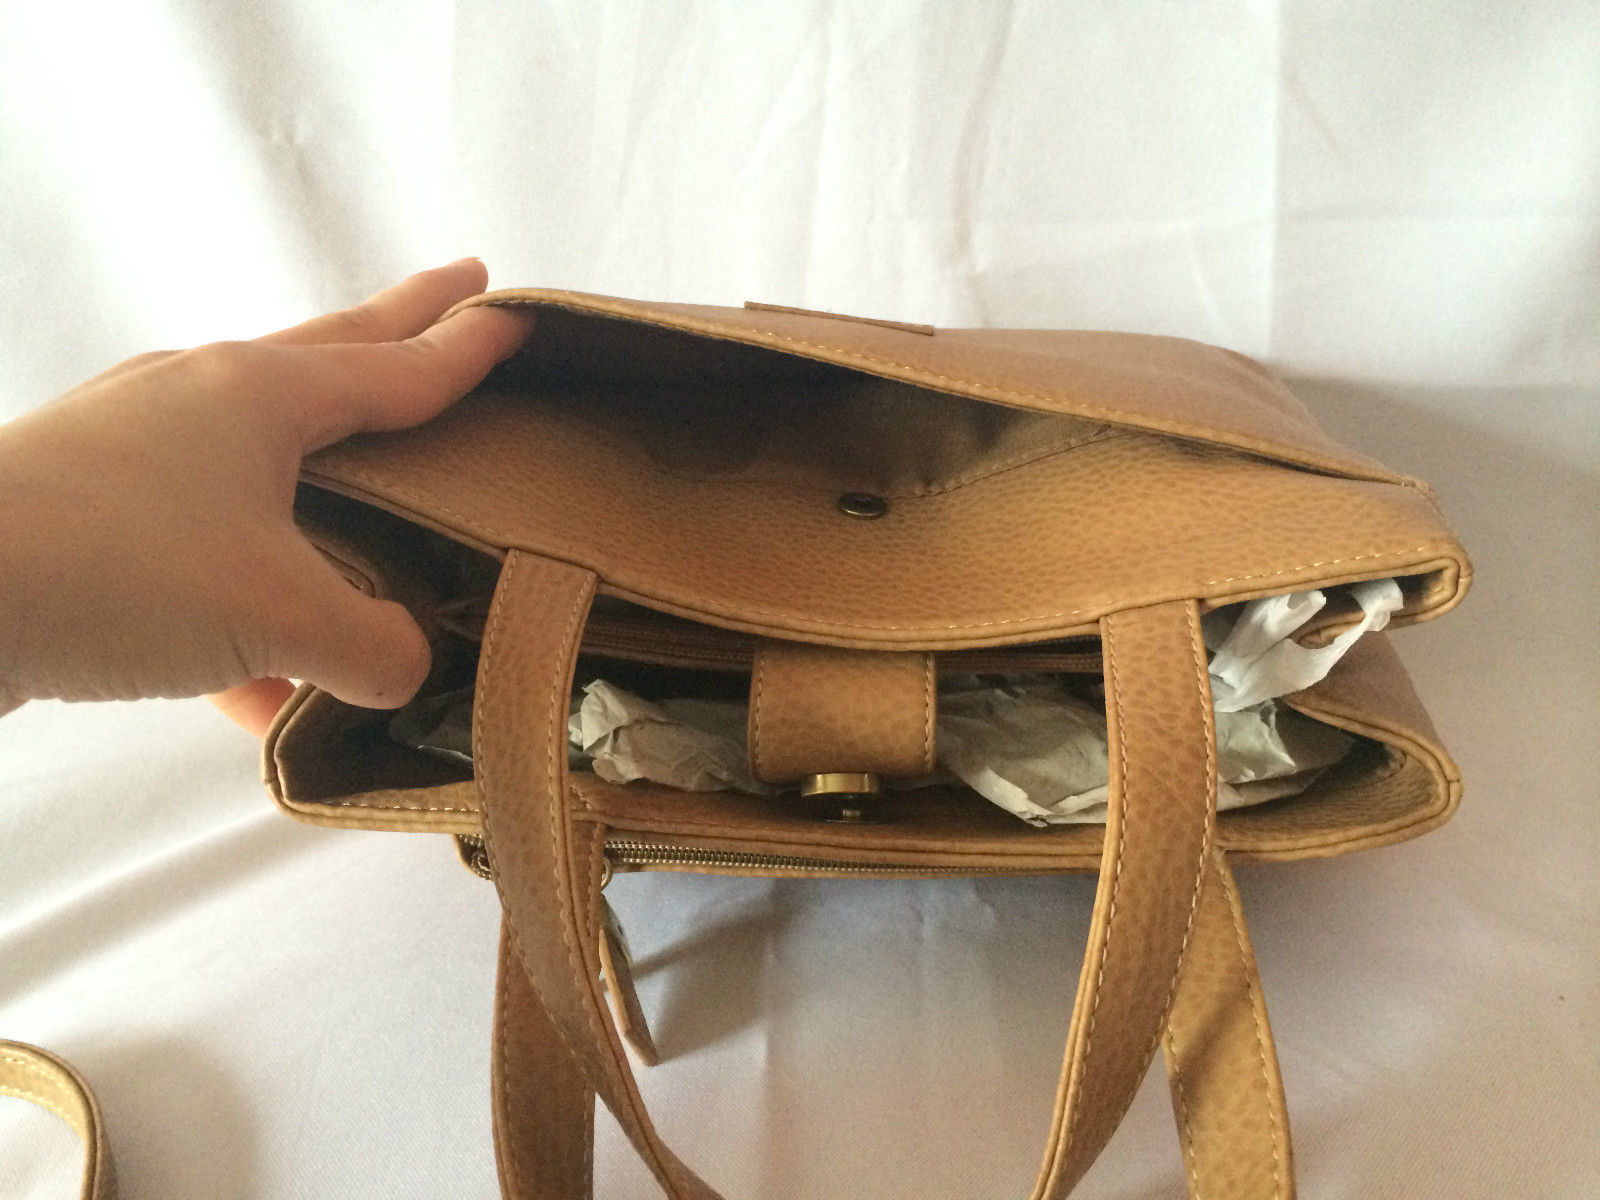 RELIC Brand Quality Brown Leather Bag with and 31 similar items c7b51297a22b6